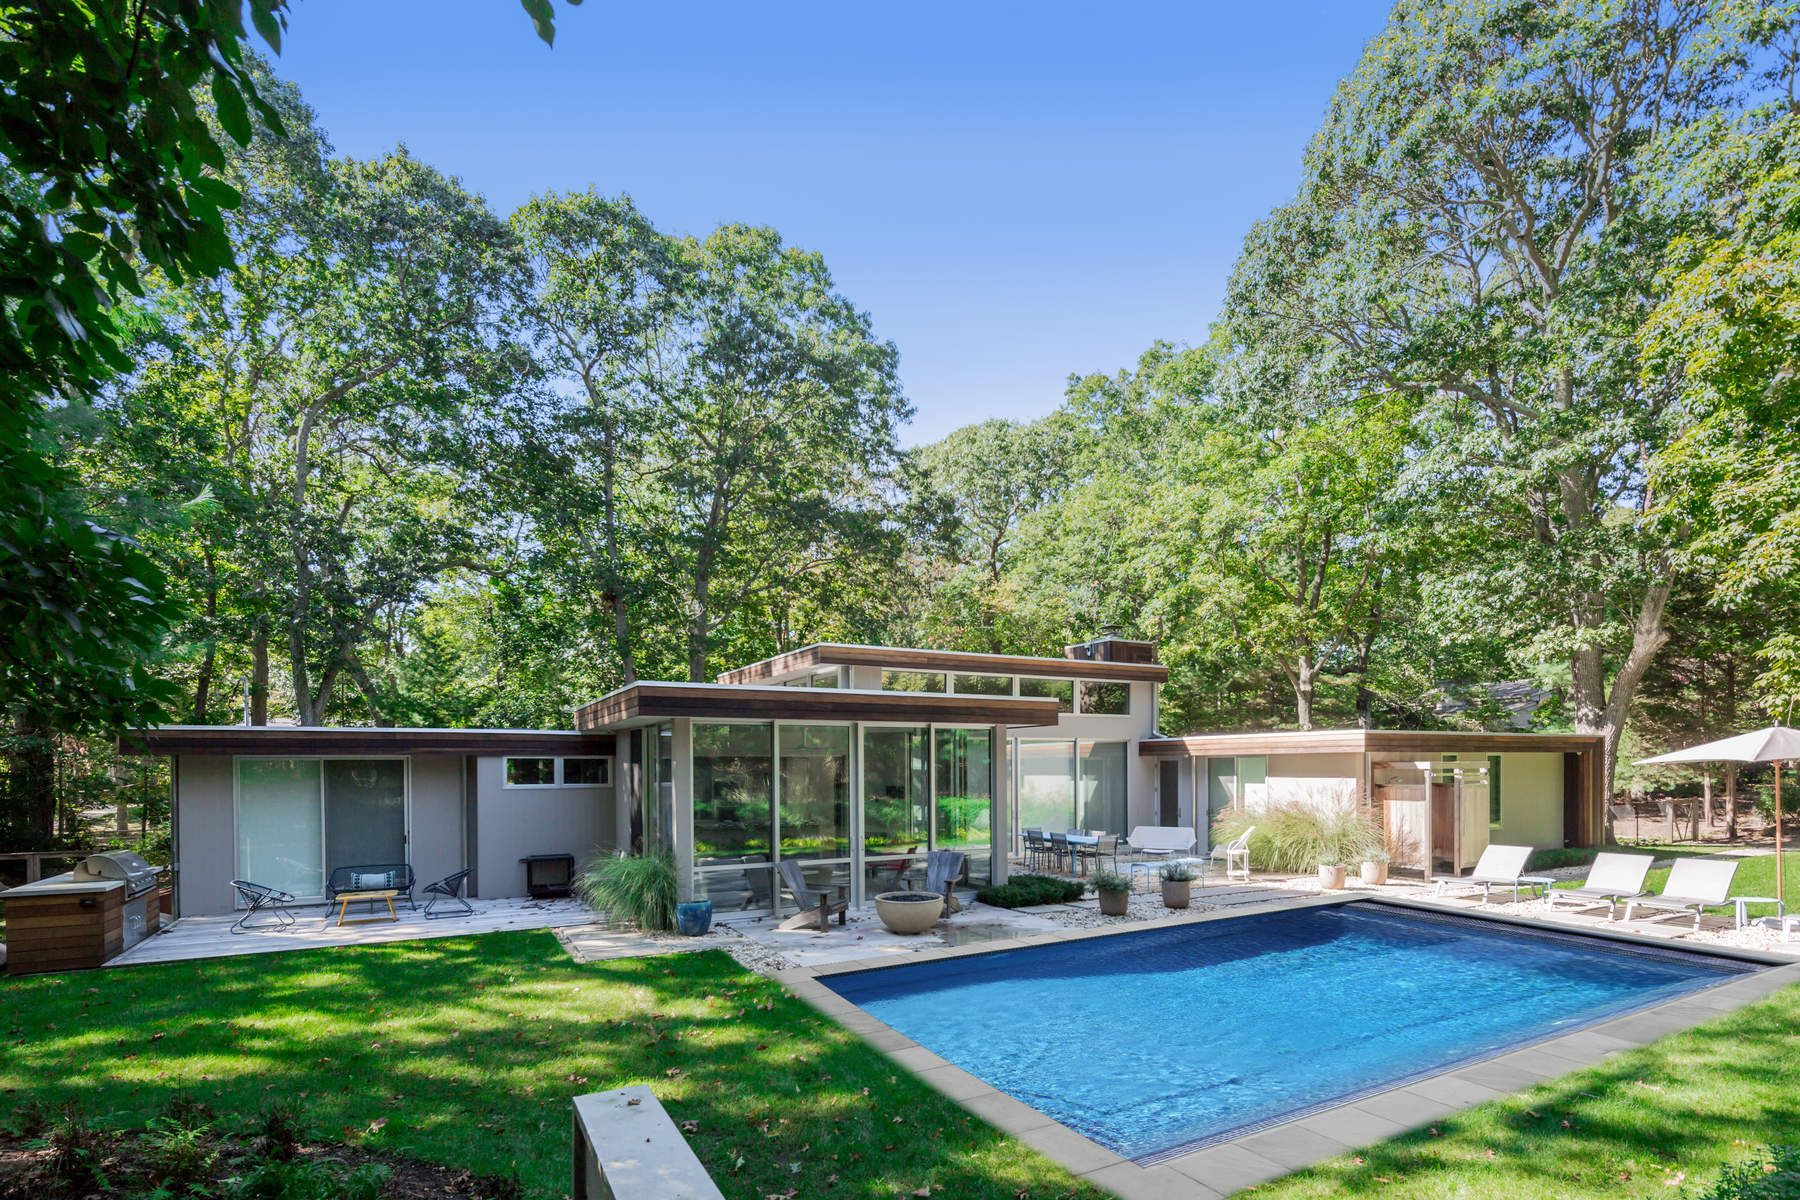 Single Family Home for Rent at Sag Harbor Modern Style Sag Harbor, New York 11963 United States